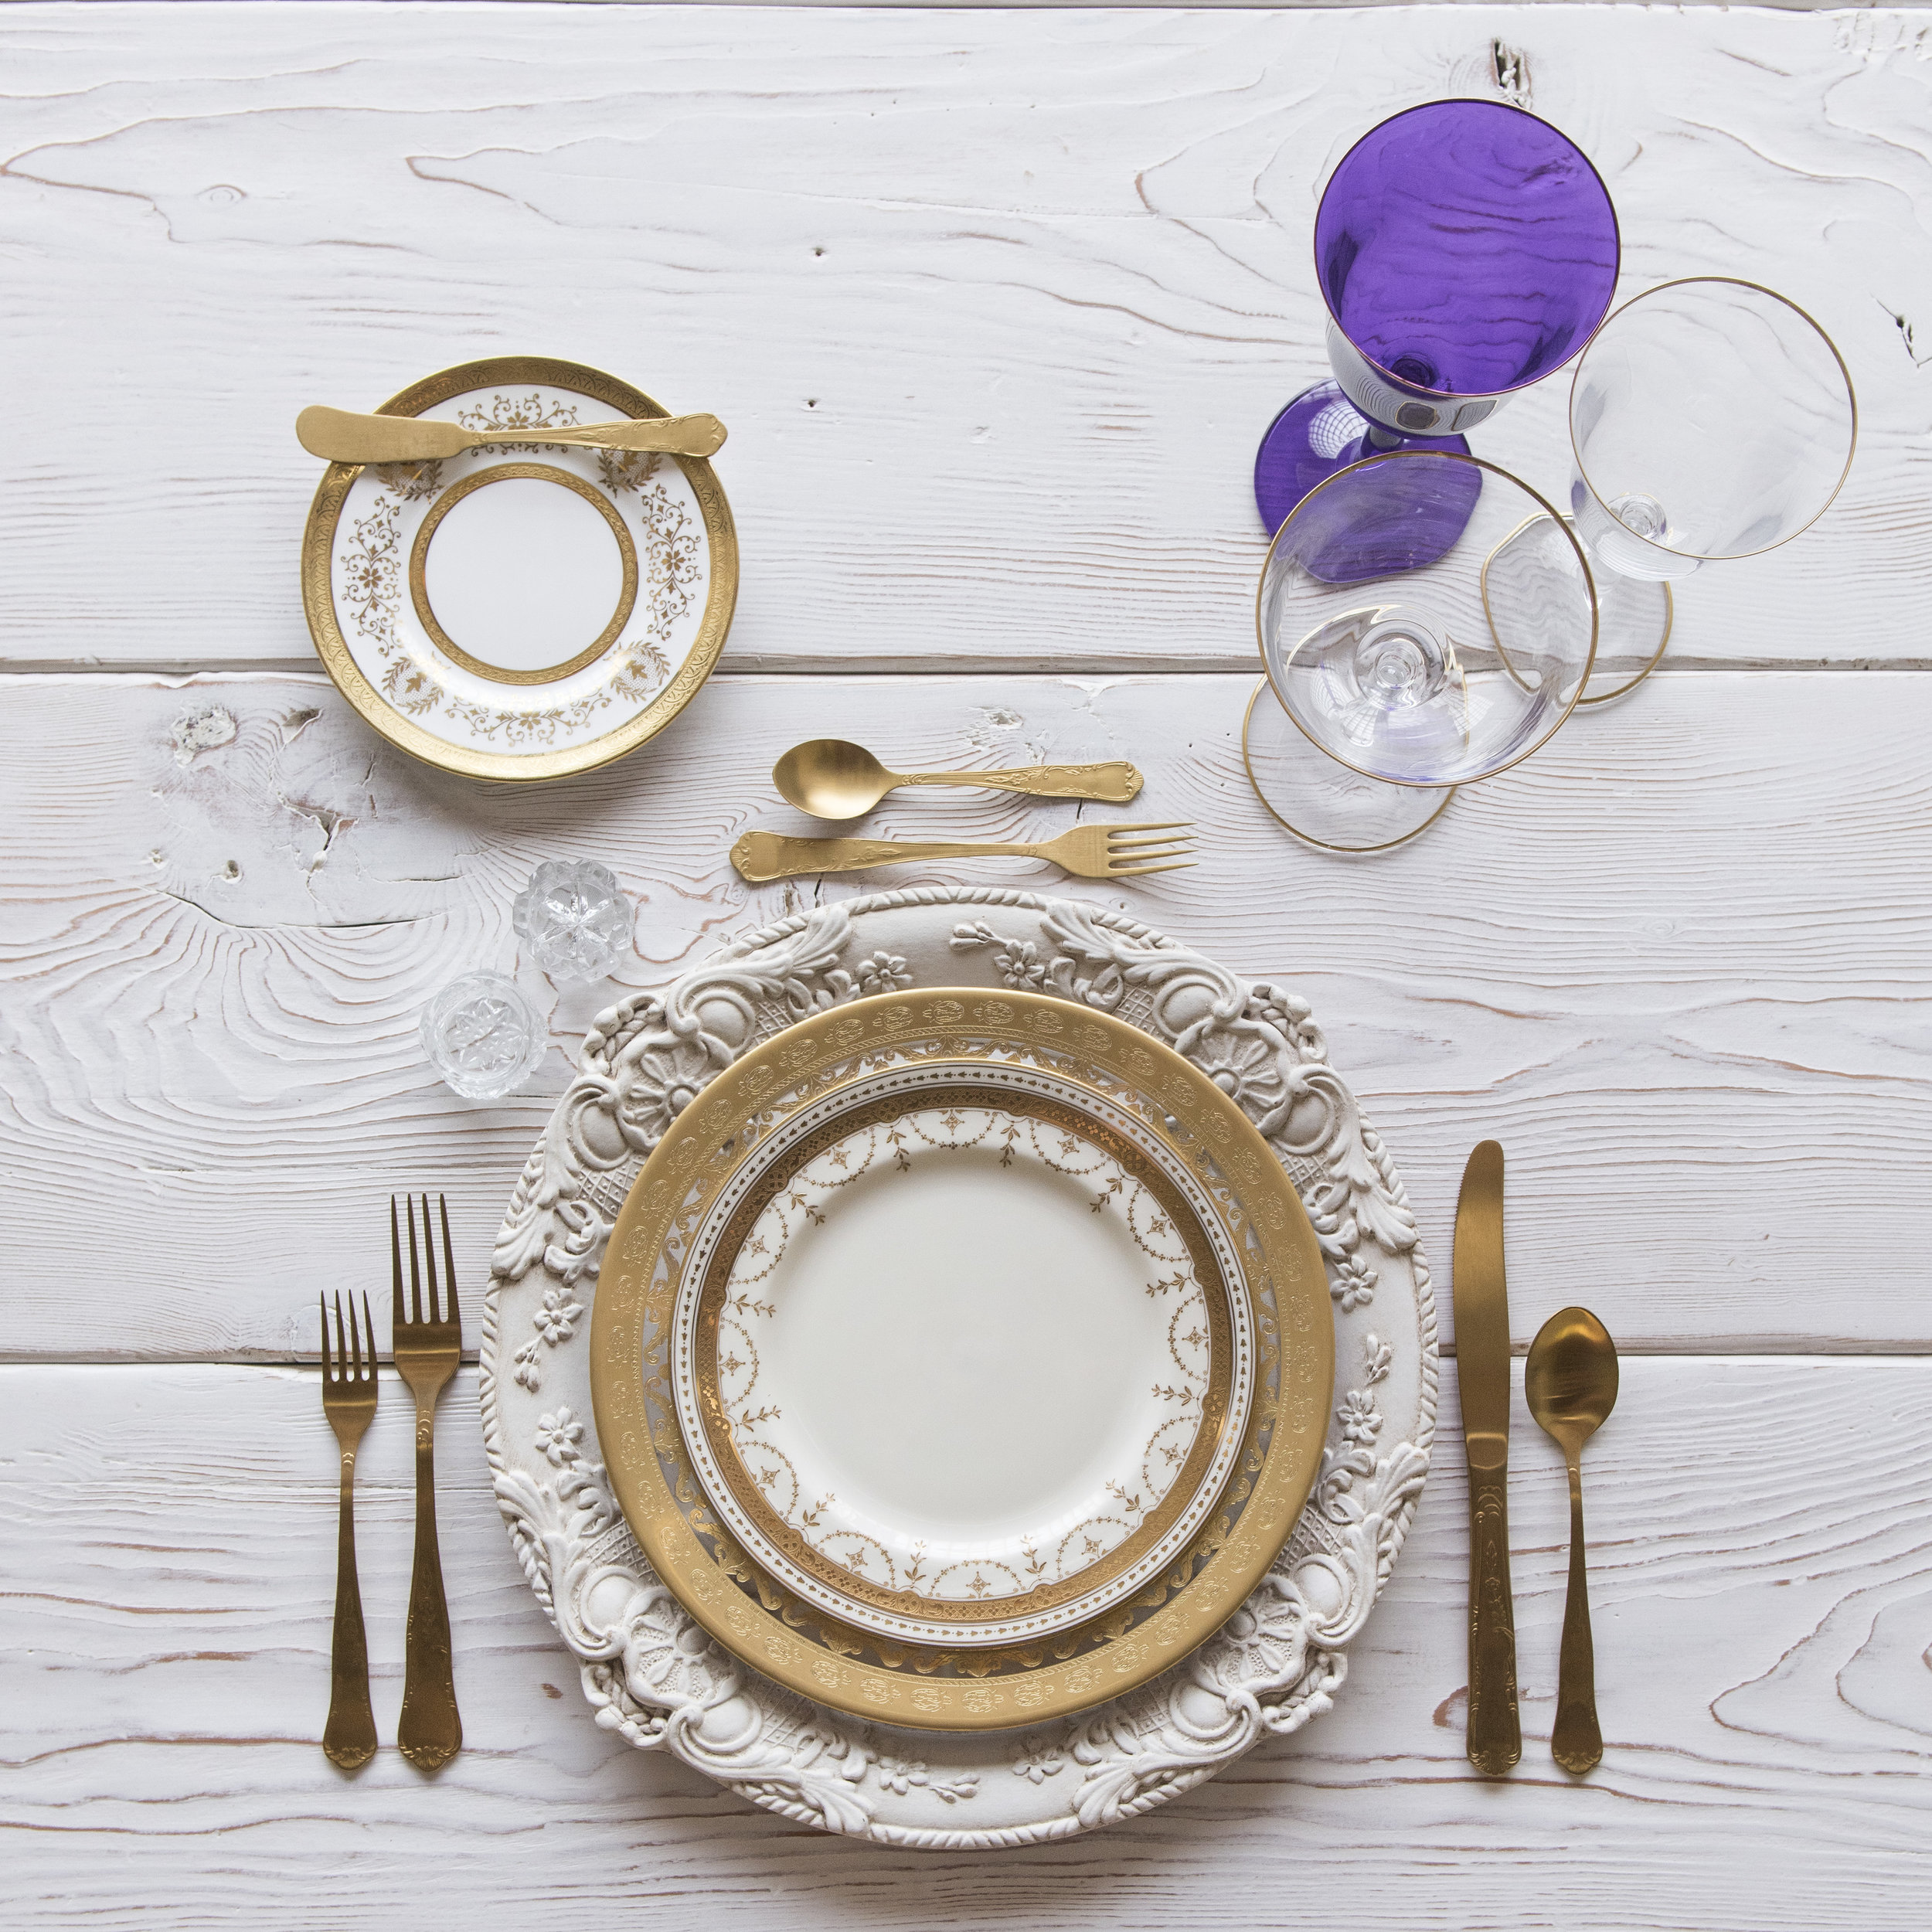 RENT: Verona Chargers in Antique White + Versailles Glass Dinnerware in 24k Gold + Crown Gold Collection Vintage China + Chateau Flatware in Matte Gold + Chloe 24k Gold Rimmed Stemware + Chloe 24k Gold Rimmed Goblet in Purple + Antique Crystal Salt Cellars   SHOP: Verona Chargers in Antique White + Chloe 24k Gold Rimmed Stemware